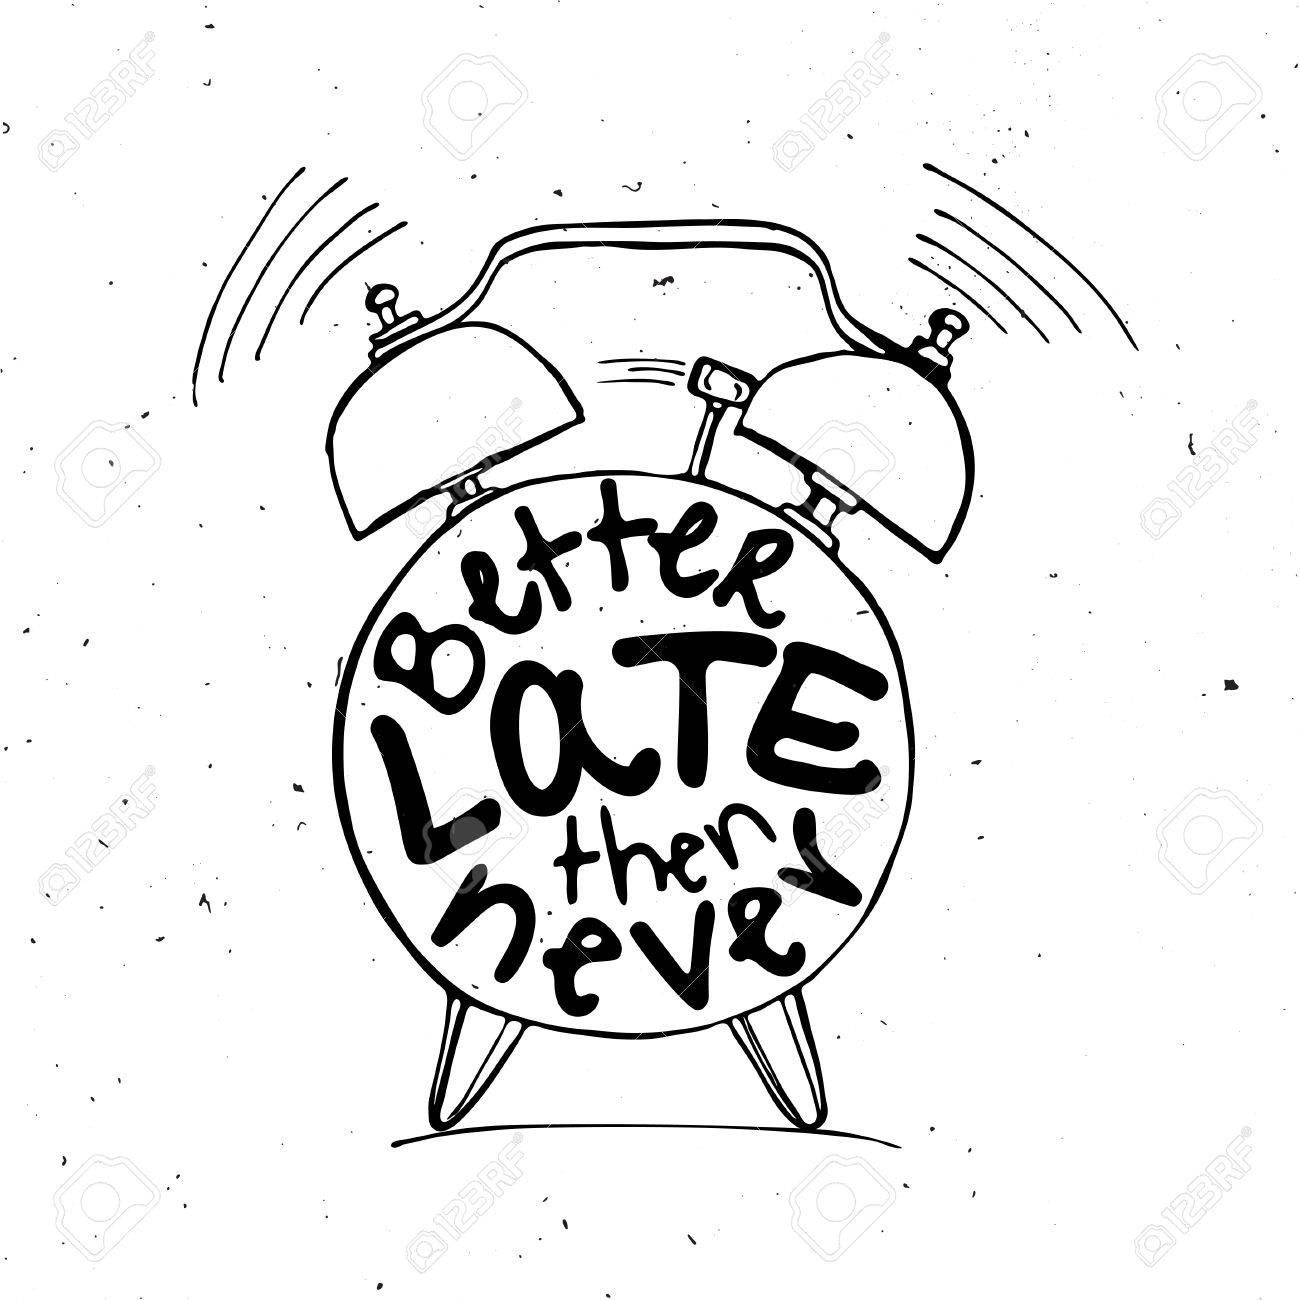 1300x1300 Hand Draw Alarm Clock Illustration With Lettering About Better